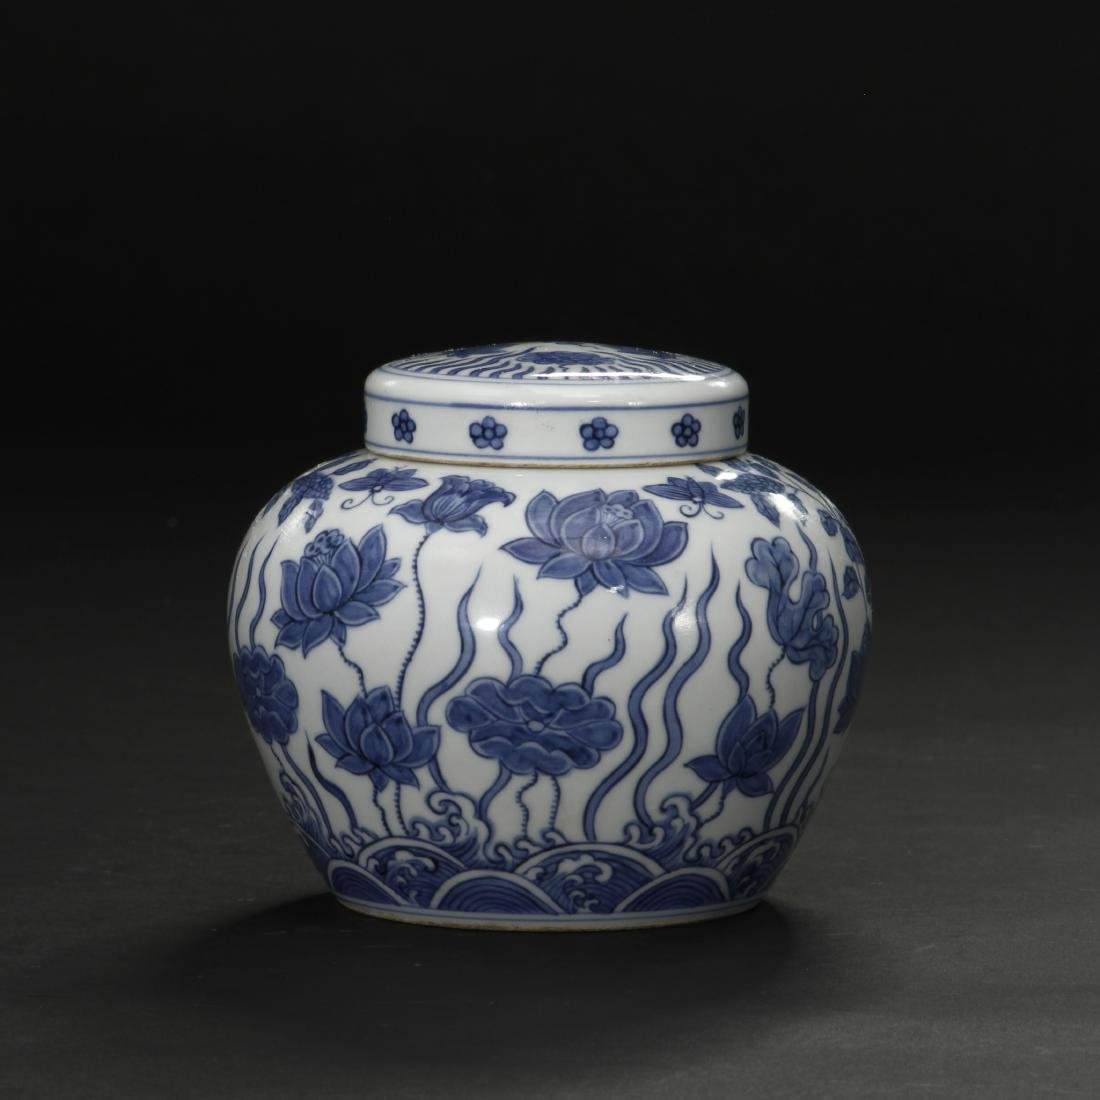 Blue and White 'Lotus' Jar and Cover